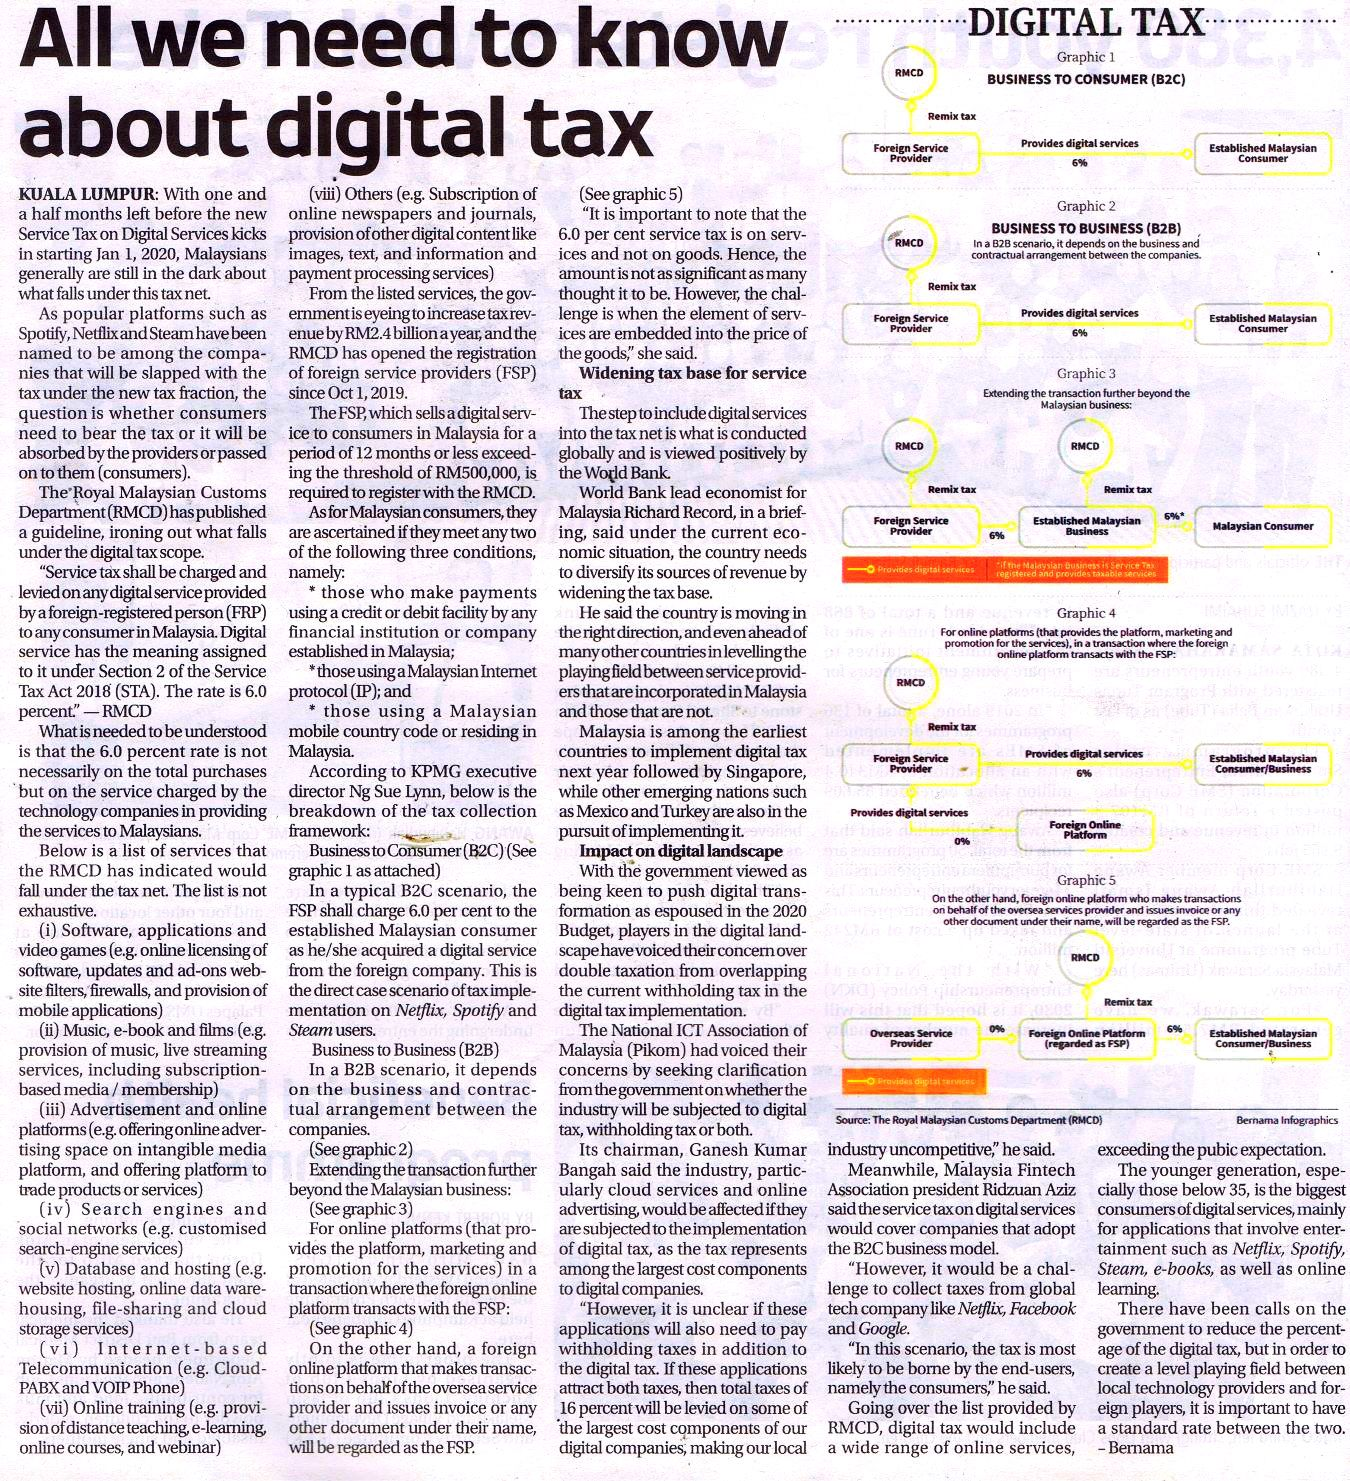 All we need to know about digital tax